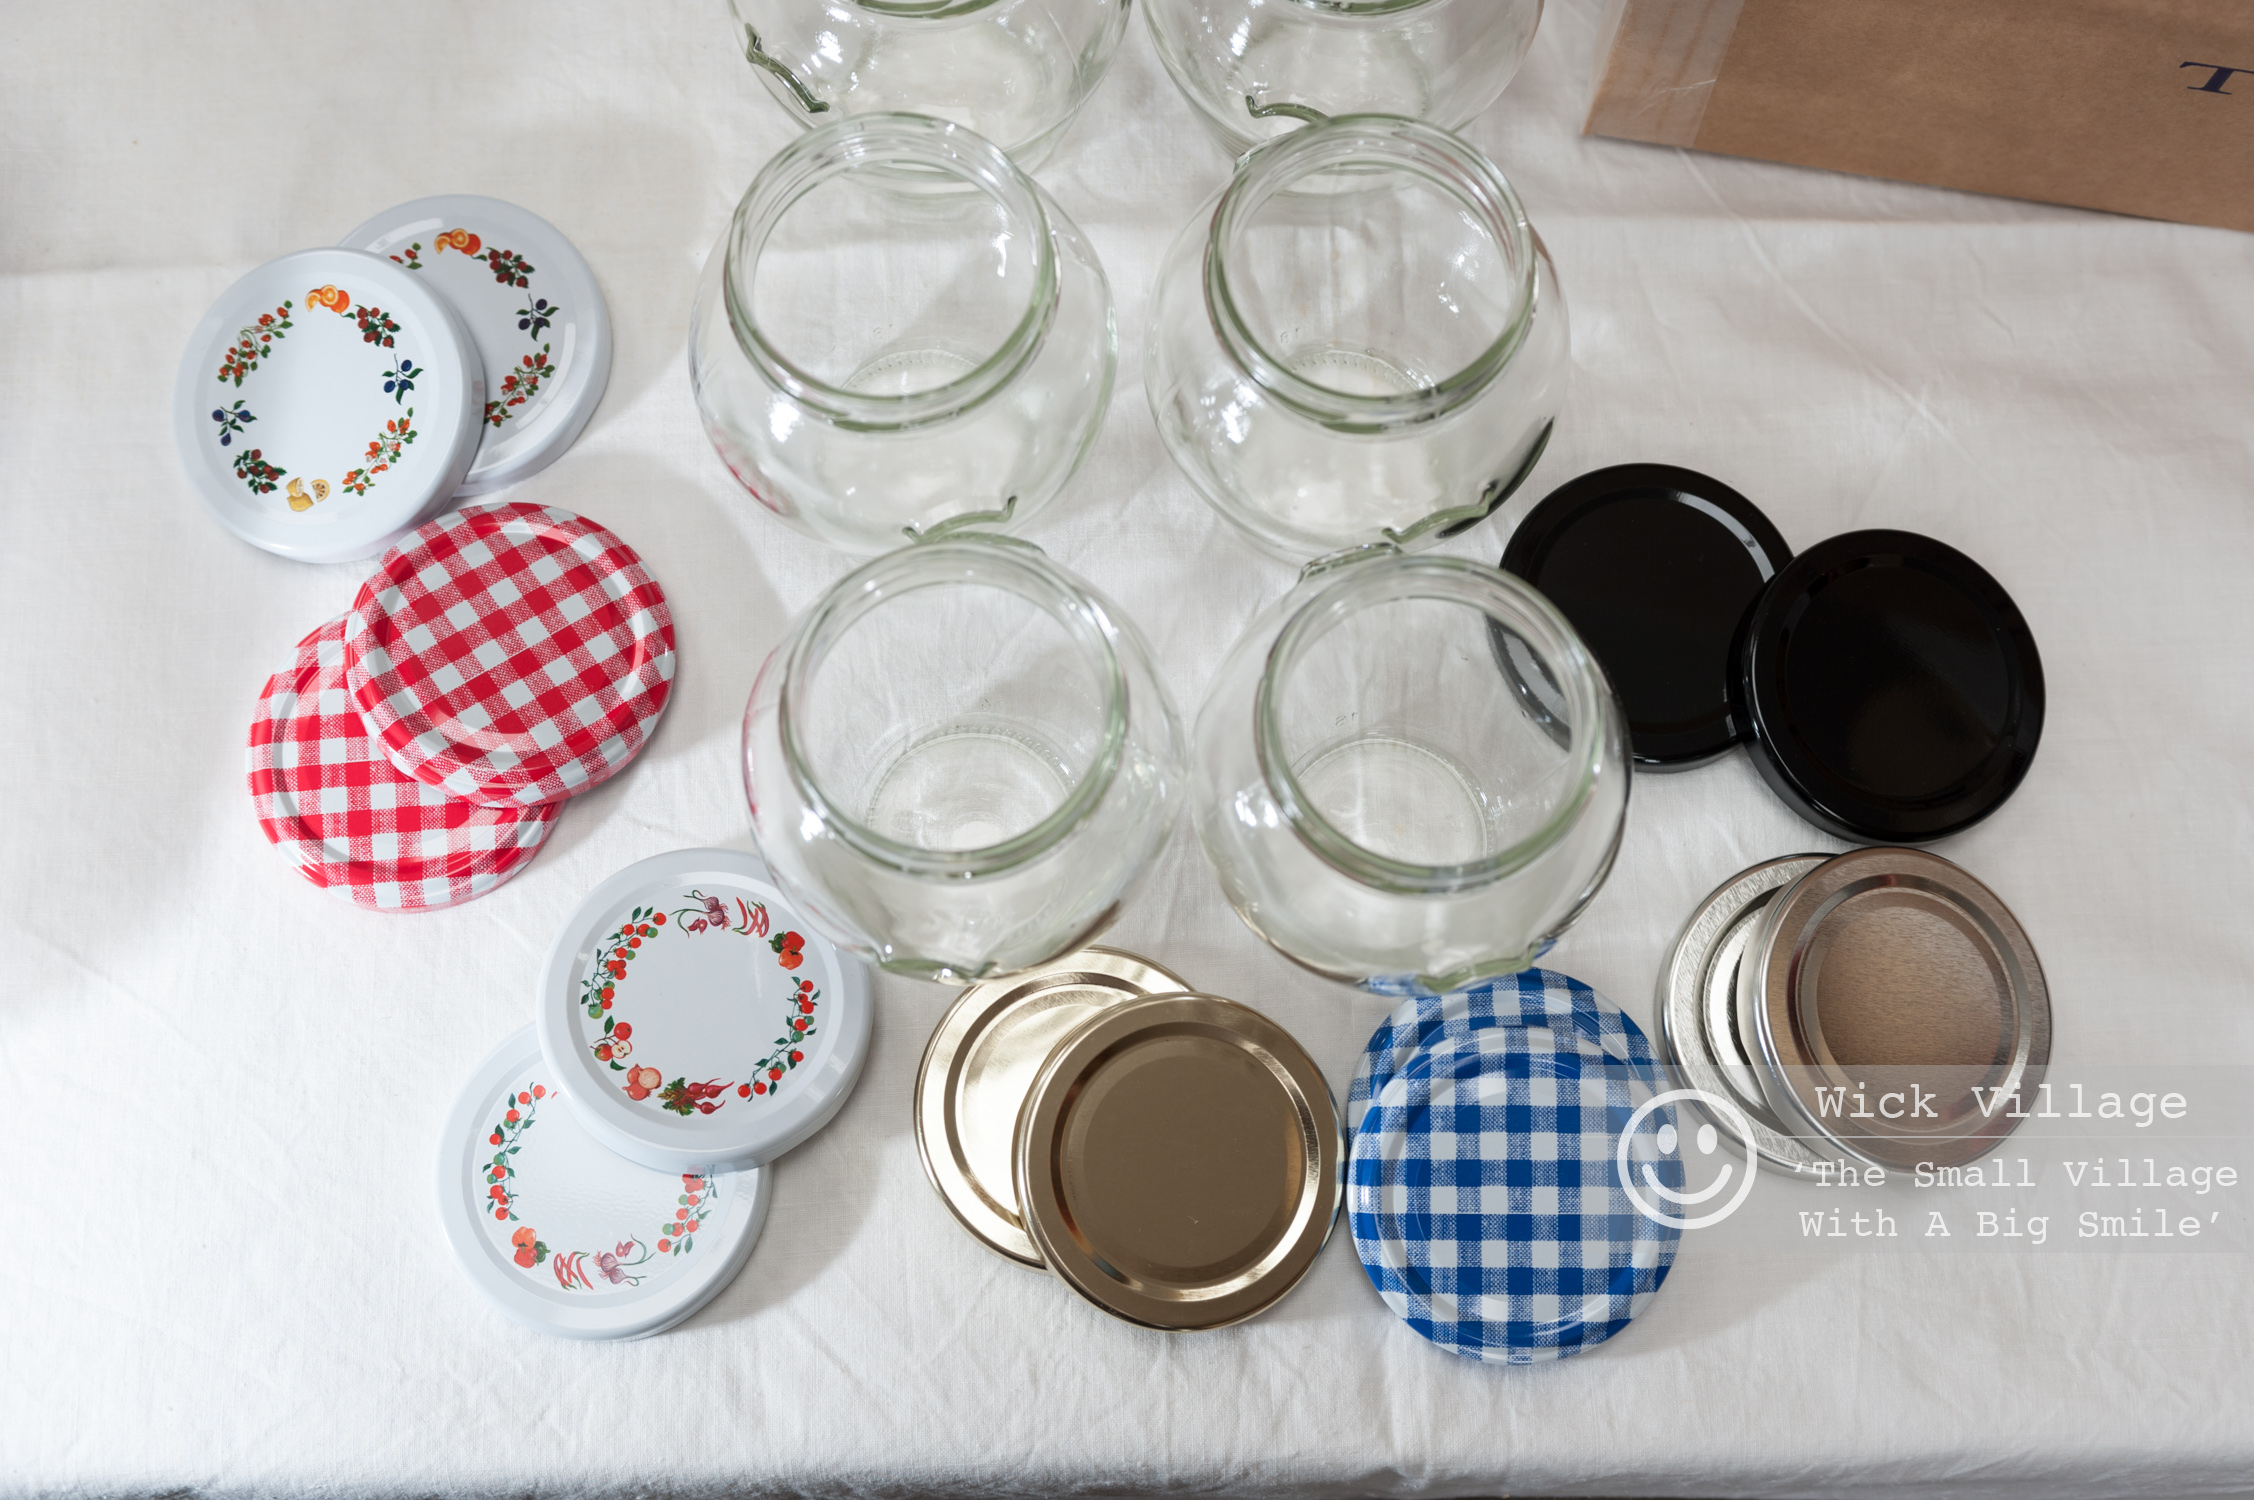 A very small selection of some of the many jam jars and lids  The Bottle And Jar Company  sells to their customers.Photo © Scott Ramsey  www.scottramsey.co.uk